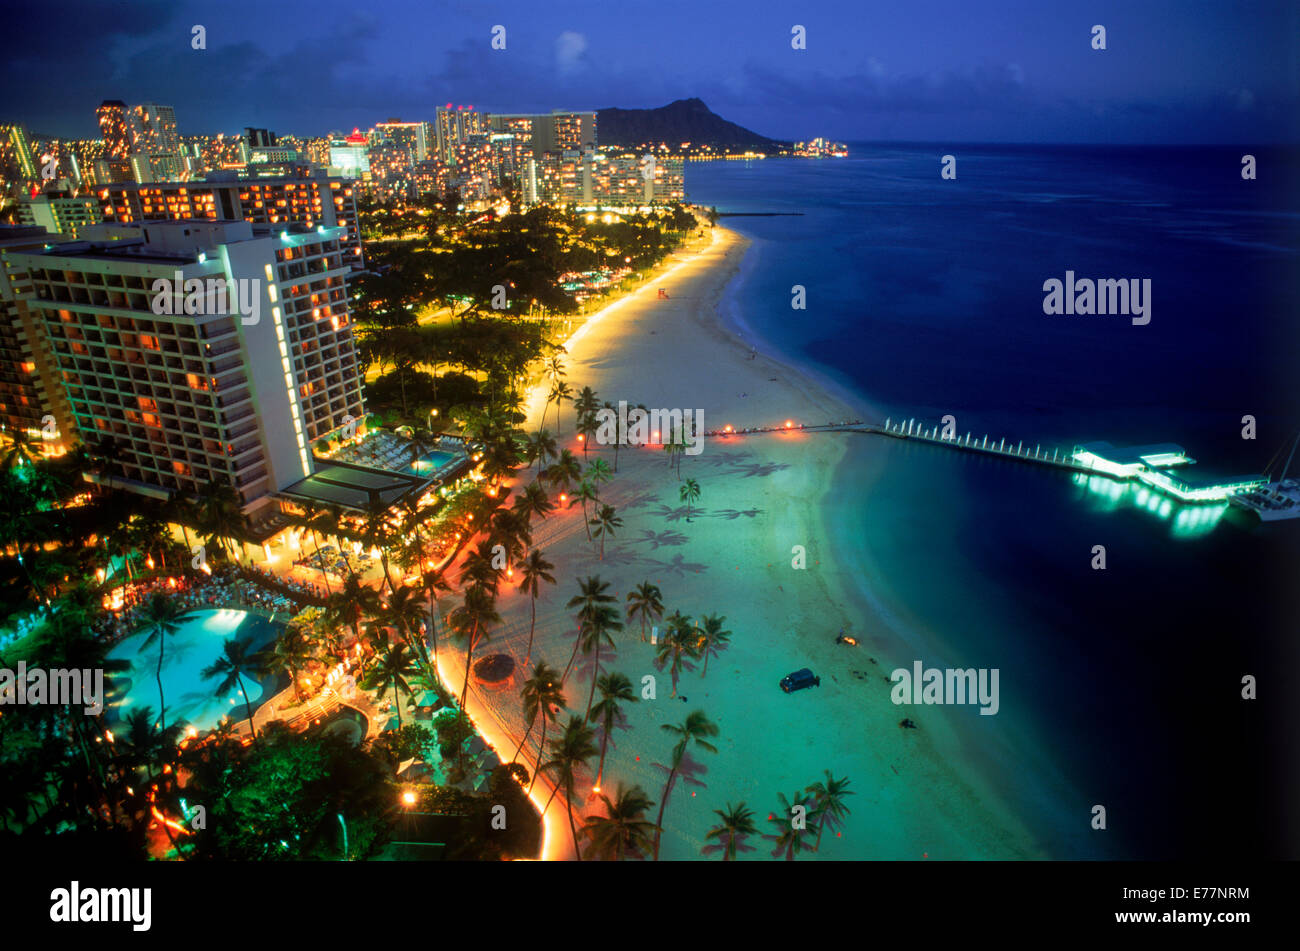 Overview of Waikiki beaches with Diamond Head at twilight - Stock Image